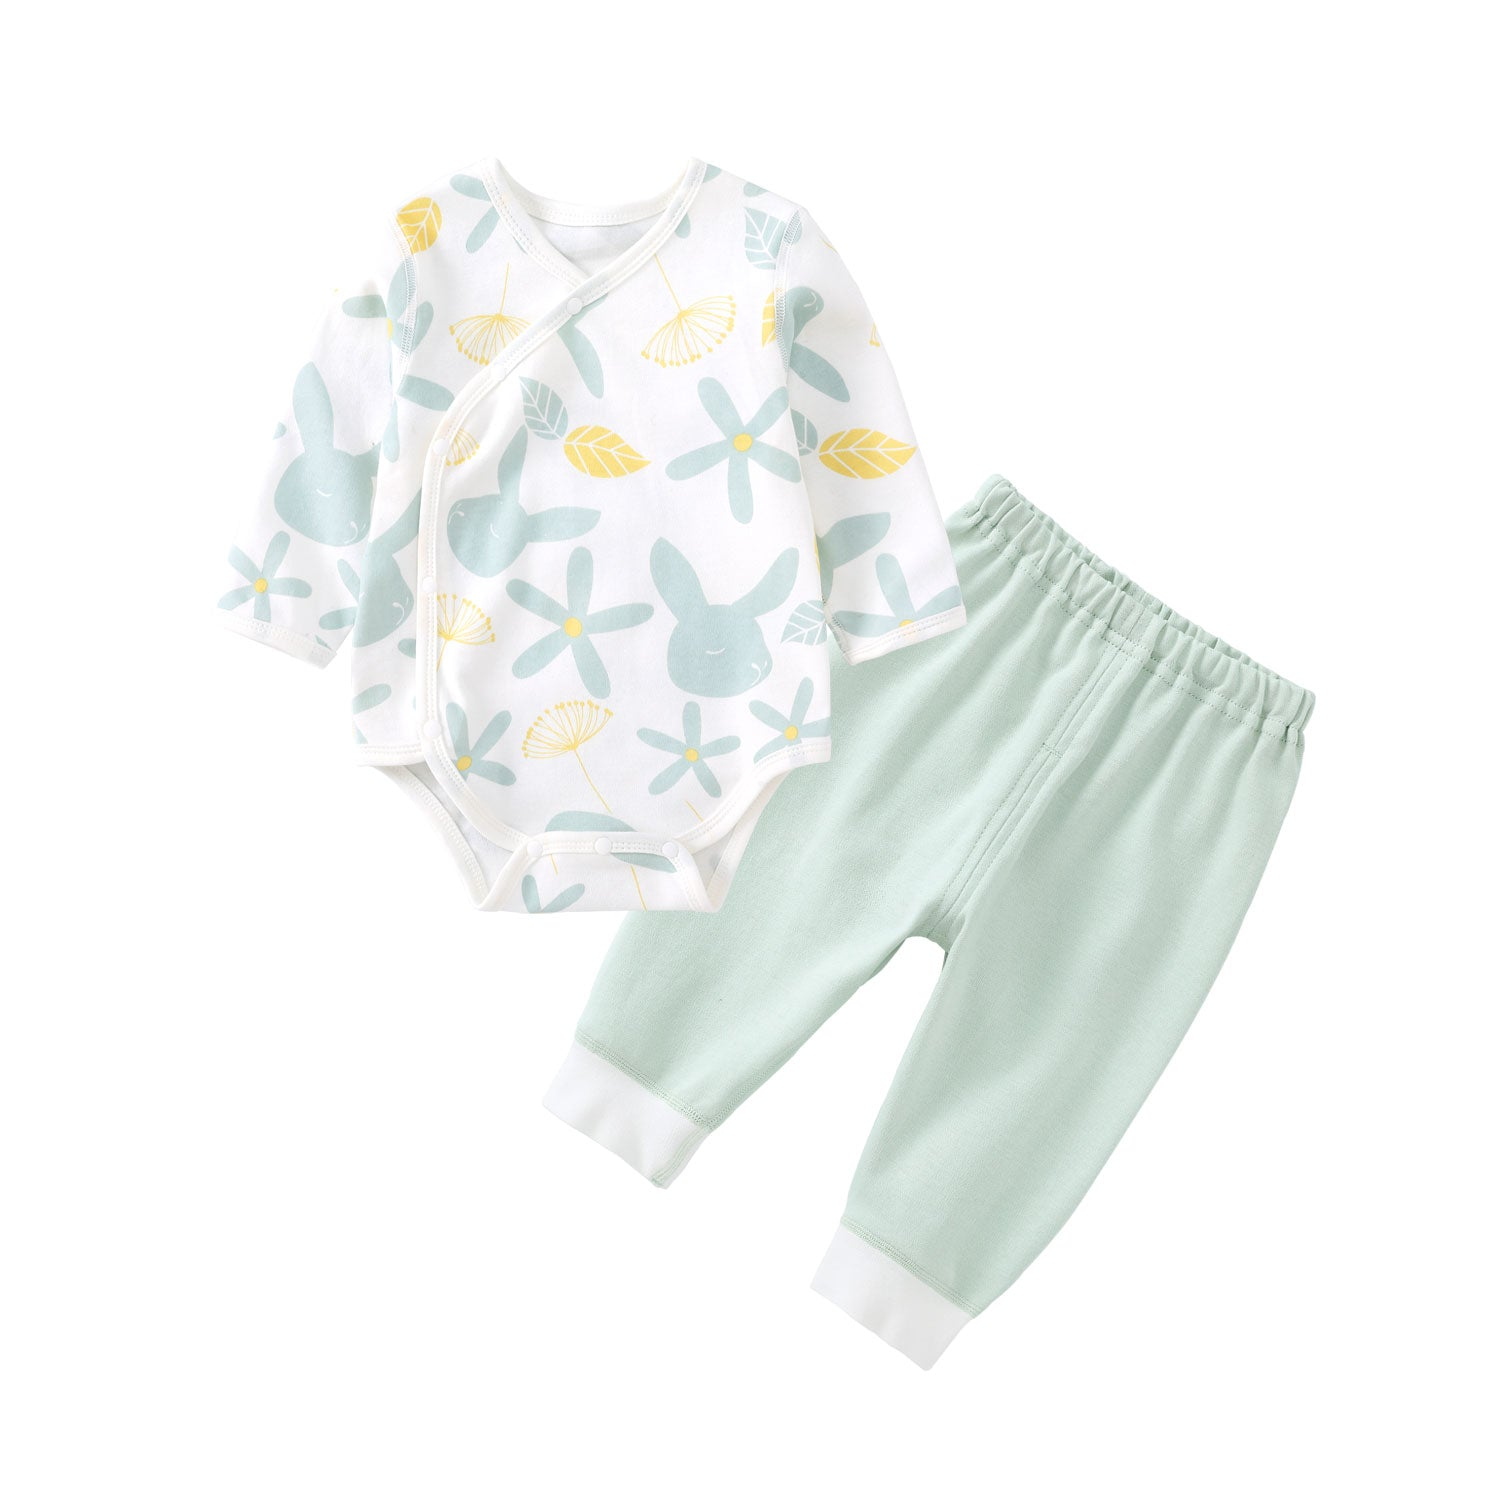 Pureborn 2 Pcs Colorful Print Clothing Set